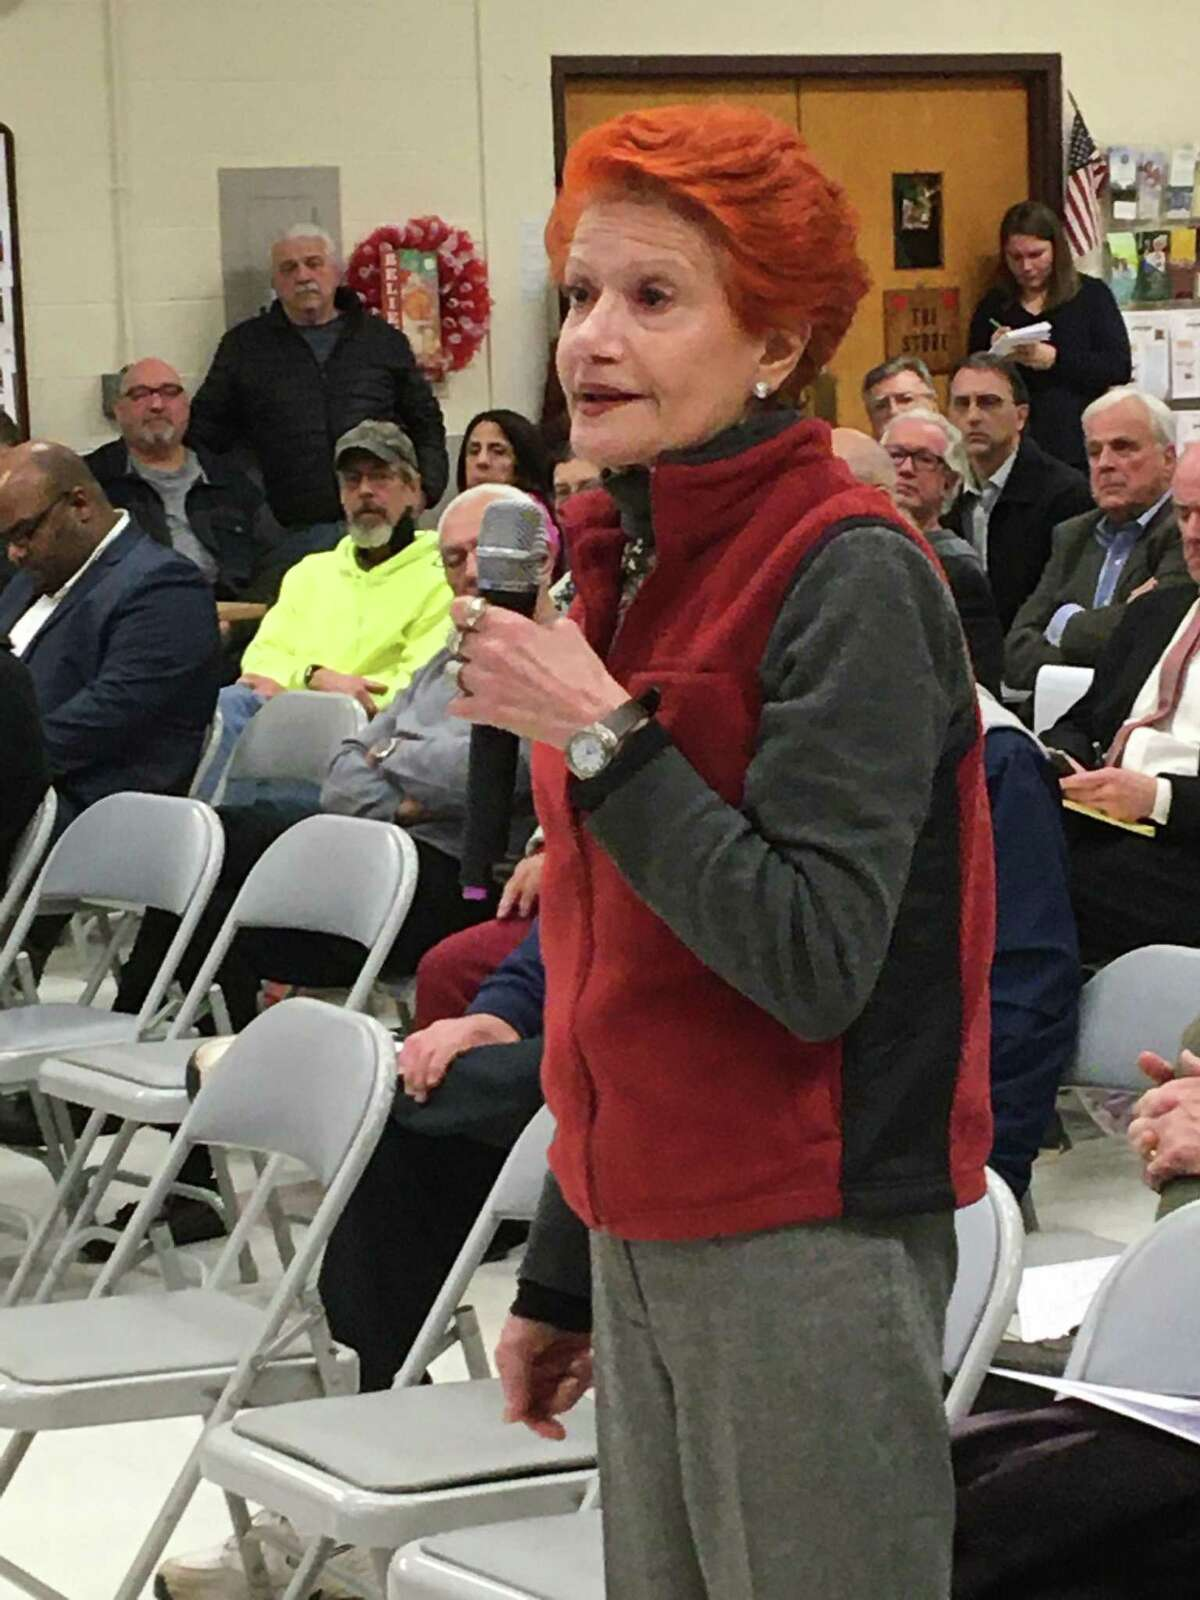 Fereshteh Bekhrad speaks Thursday night, Dec. 13, 2019, at the second public input on Tweed New Haven Regional Airport's upcoming master plan update at the East Haven Senior Center.